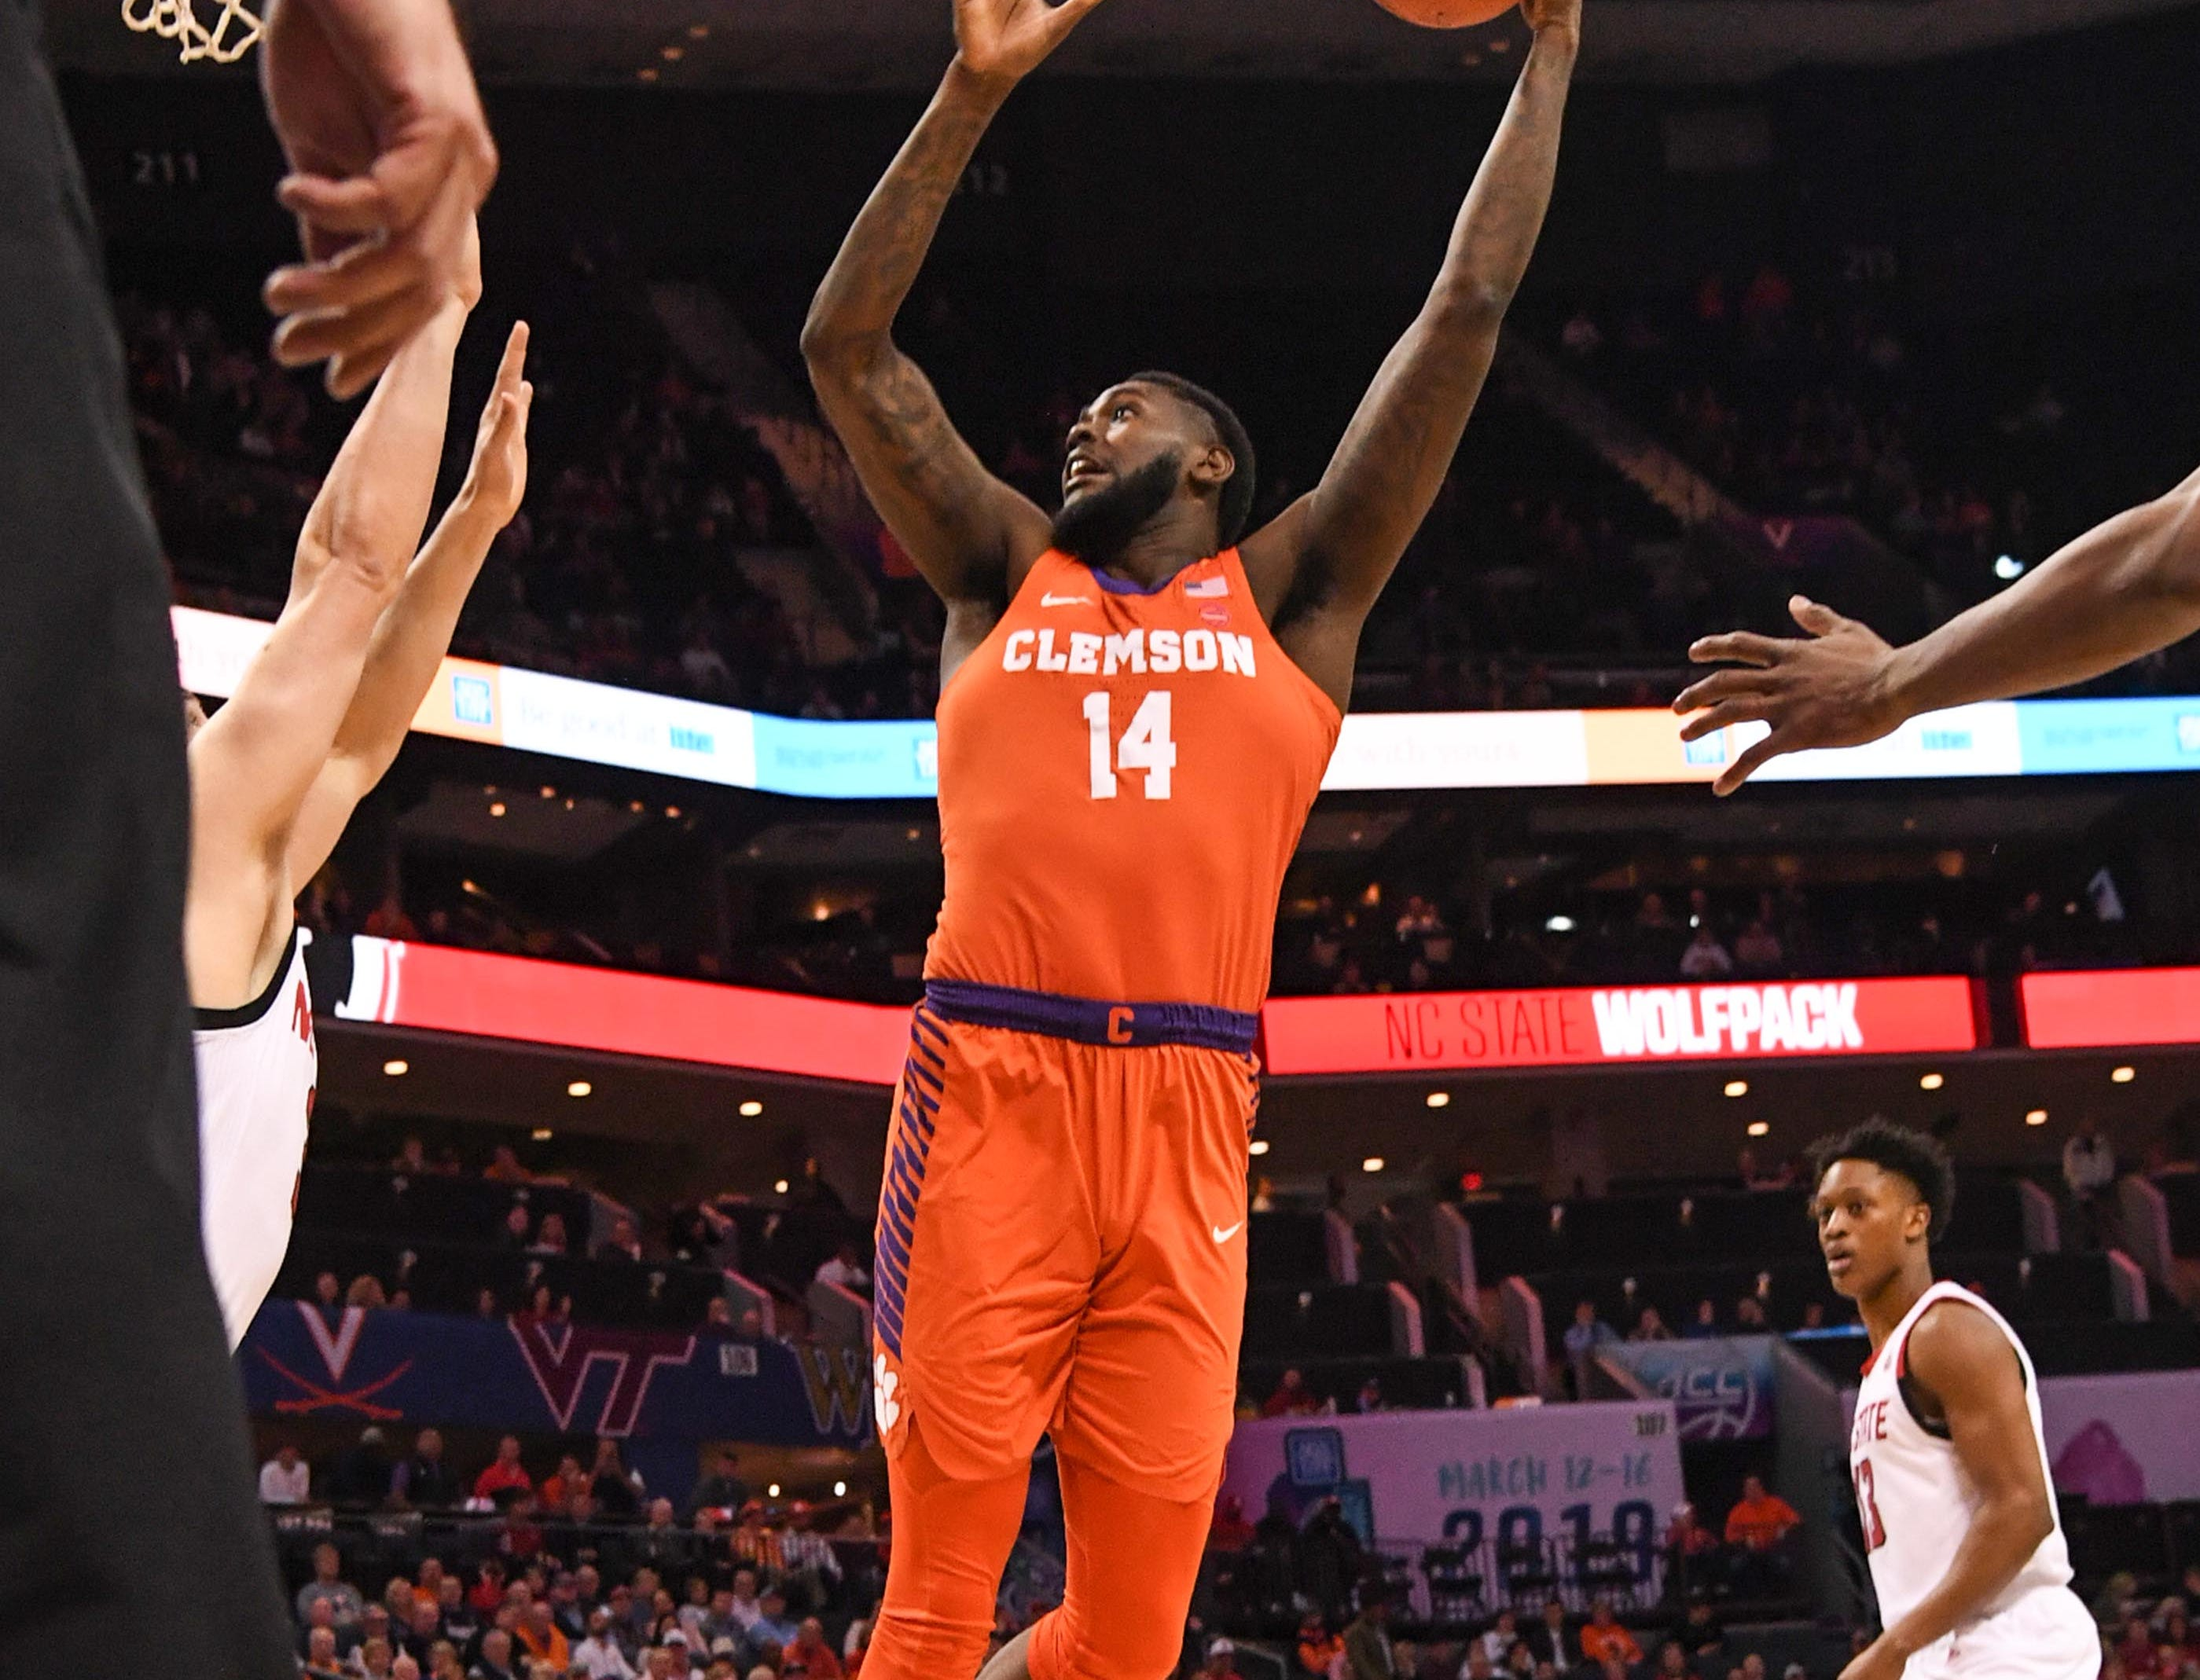 Clemson forward Elijah Thomas (14) shoots during the first half at the Spectrum Center in Charlotte, N.C. Tuesday, March 12, 2019.